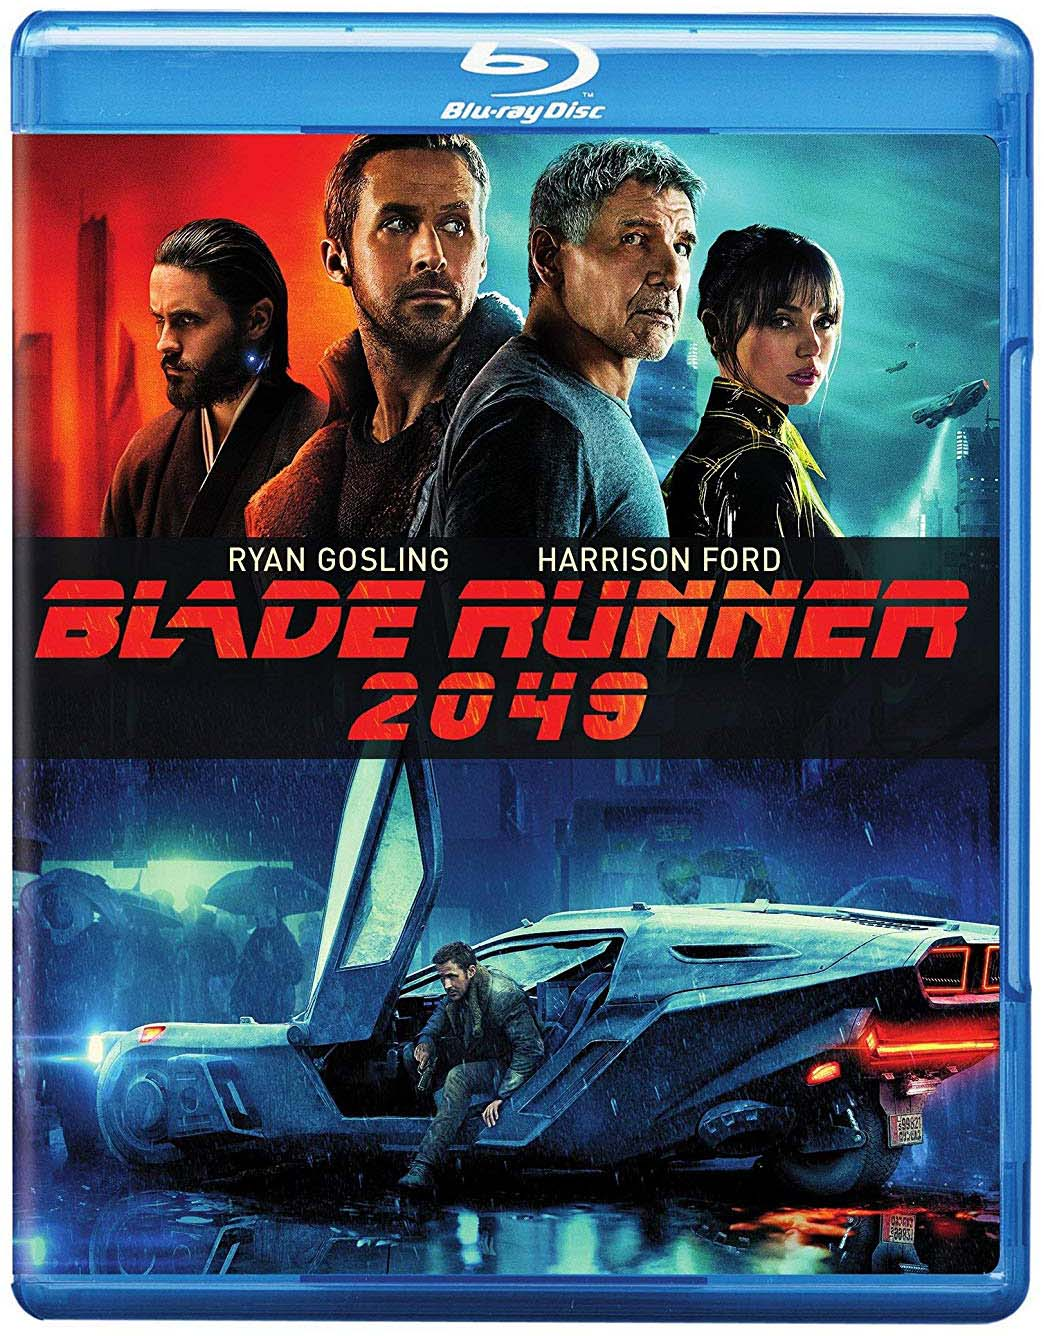 Blade Runner 2049 by Warner Brothers